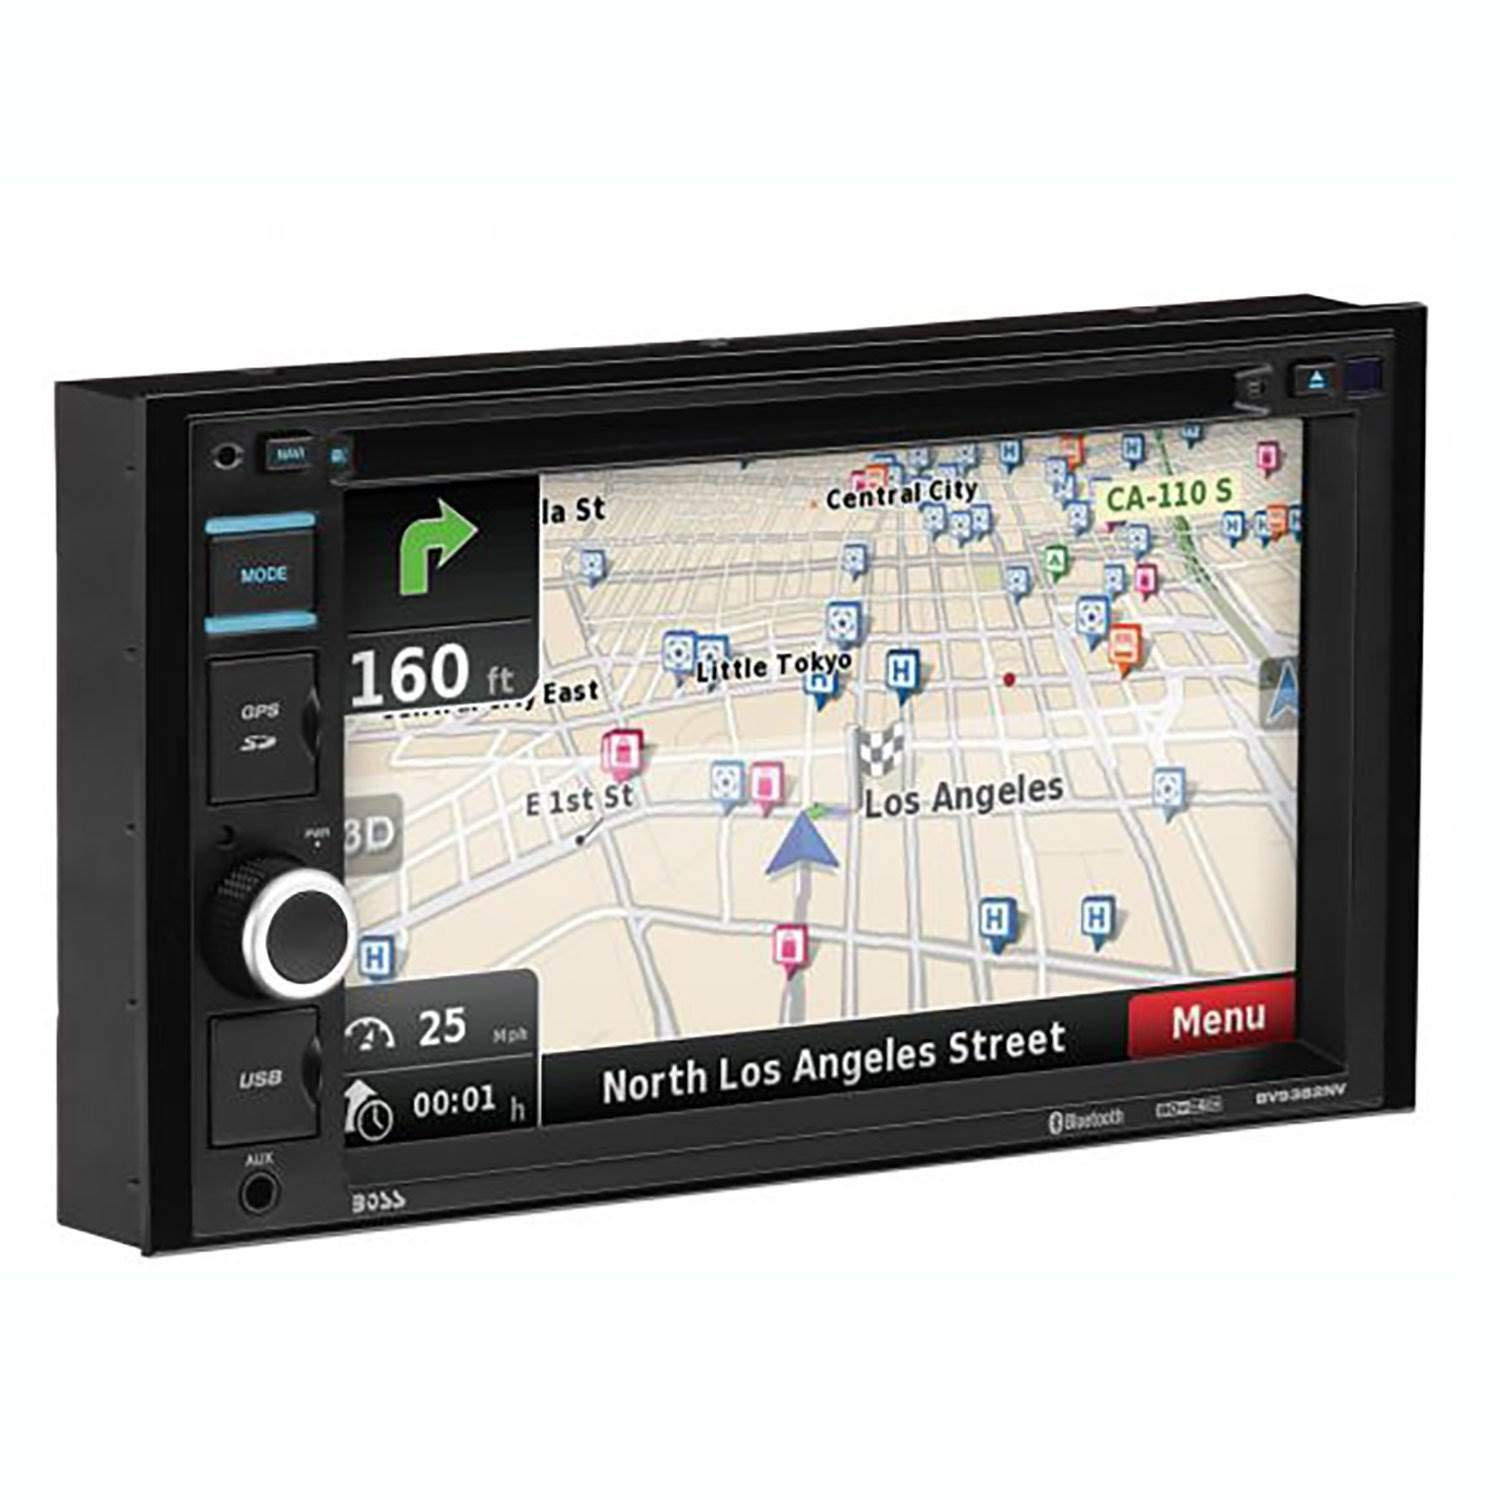 BOSS Audio Systems BV9382NV Double Din, Touchscreen, Bluetooth, Navigation GPS, DVD CD MP3 USB SD AM FM Car Stereo, 6.2 Inch Digital LCD Monitor, Wireless Remote by BOSS Audio Systems